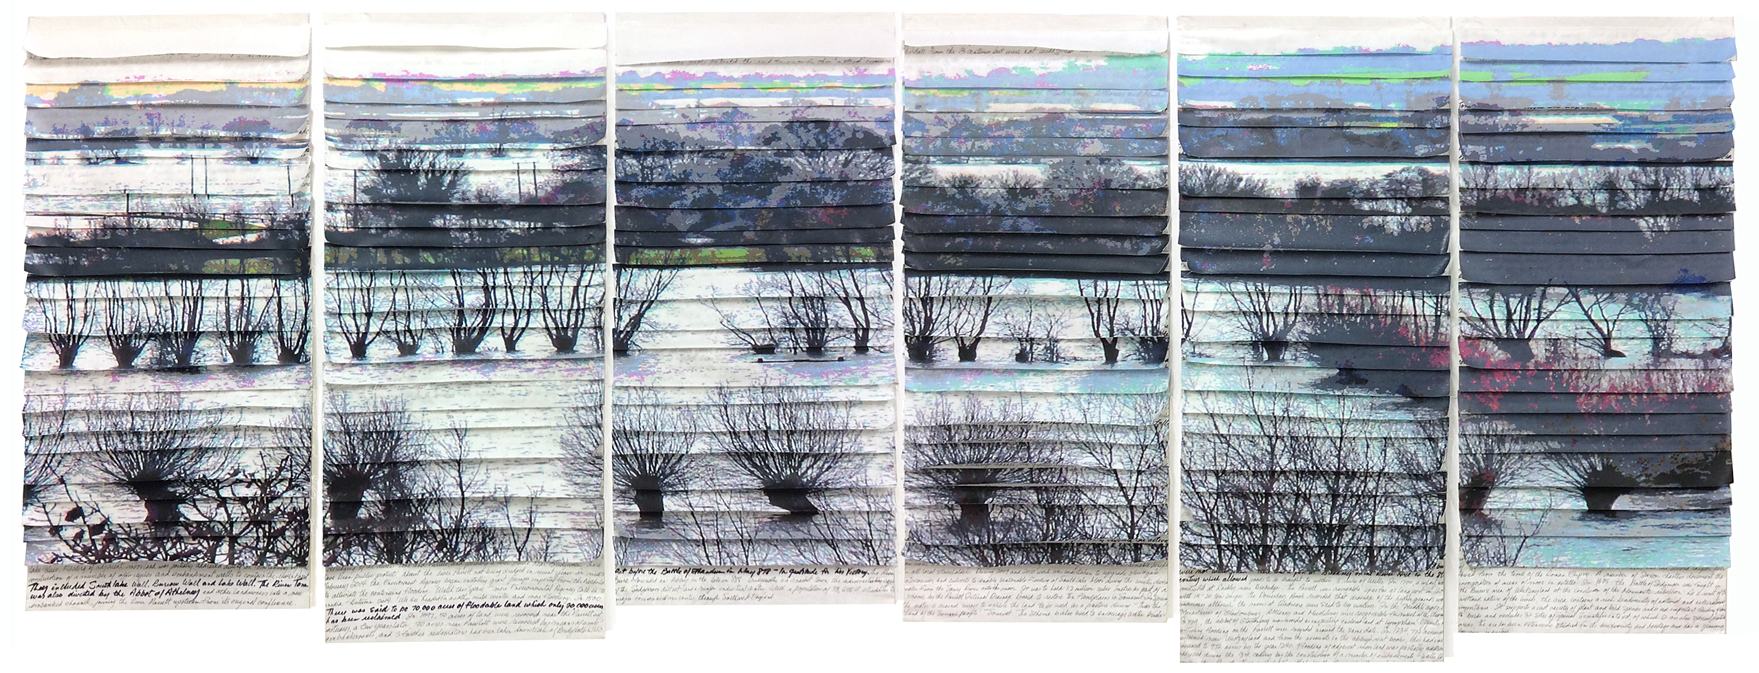 This is called Reality and Rhetoric and is 2.6m wide and relates to the flooding on the Somerset Levels last year.